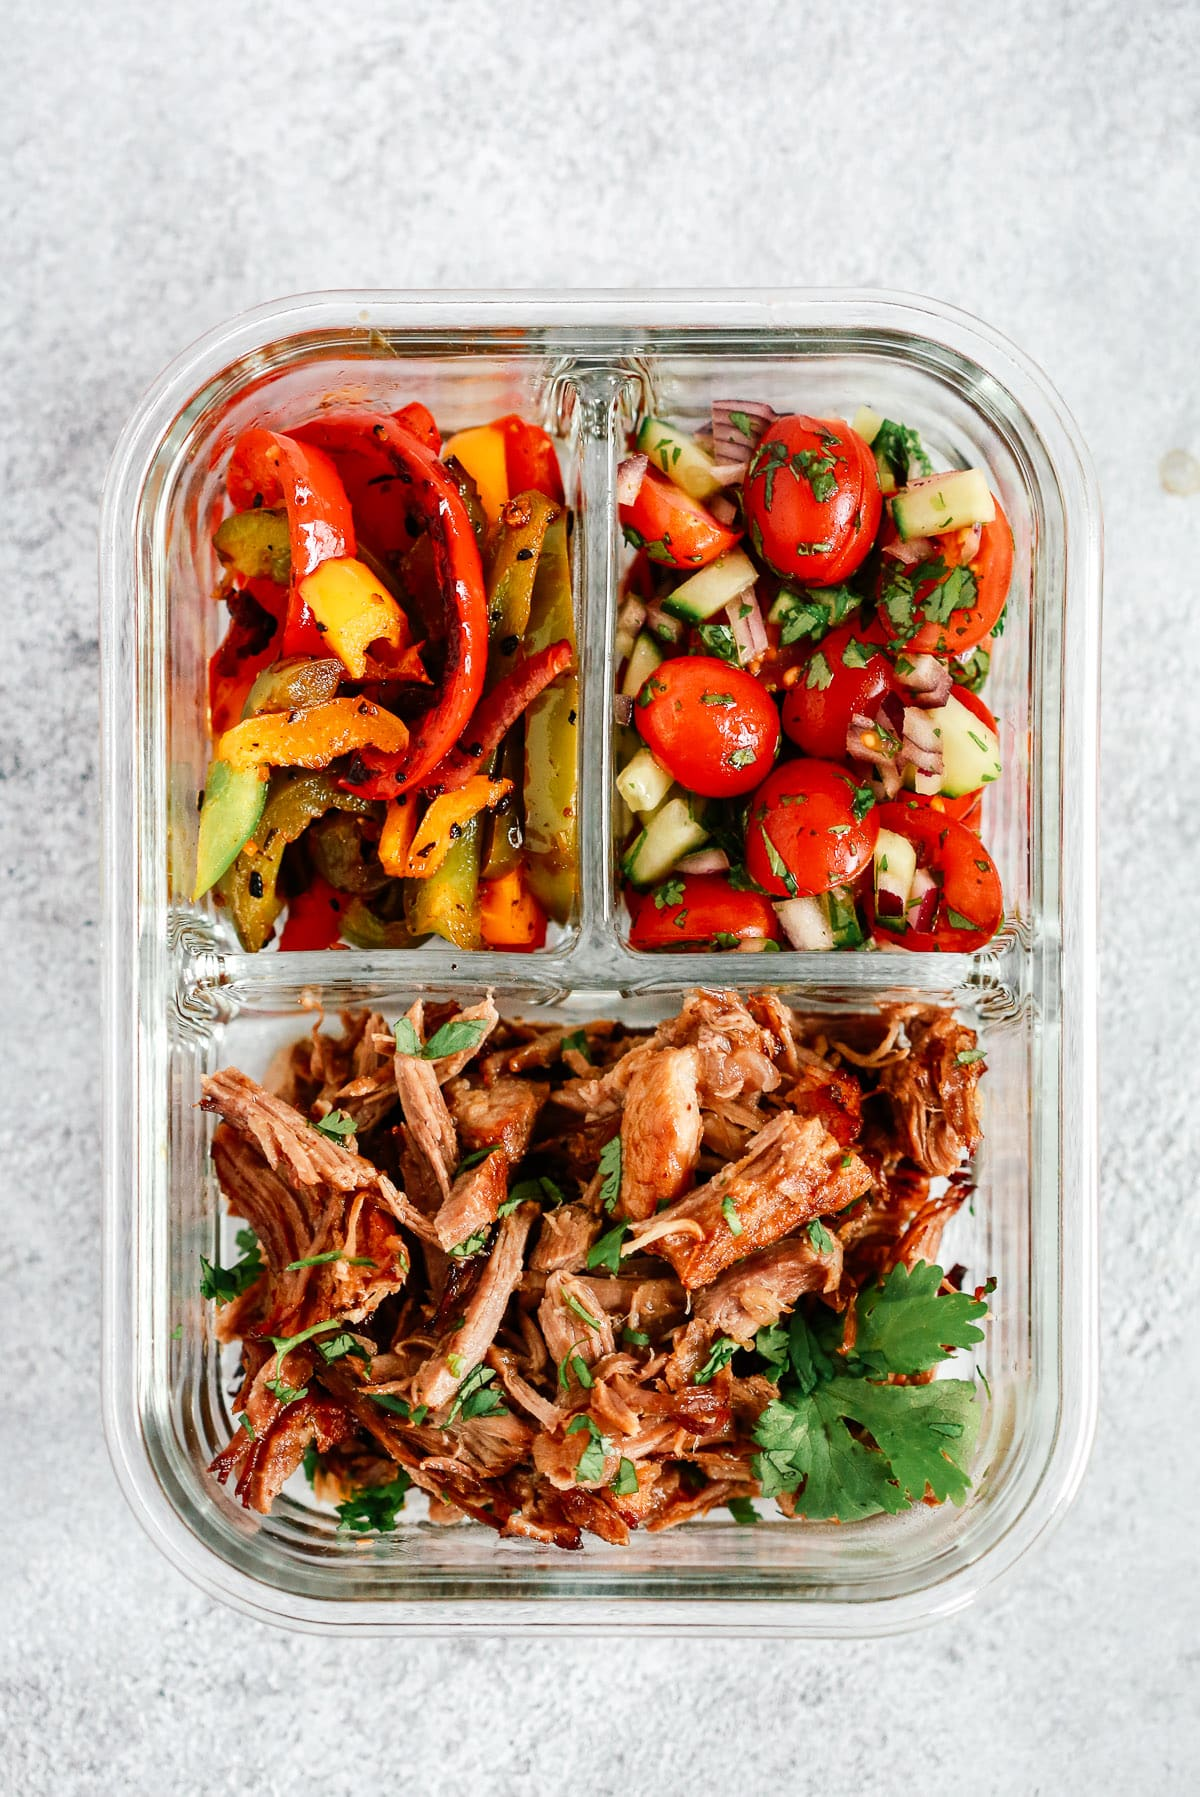 meal prep container with Mexican pulled pork, sauteed peppers and tomato salsa